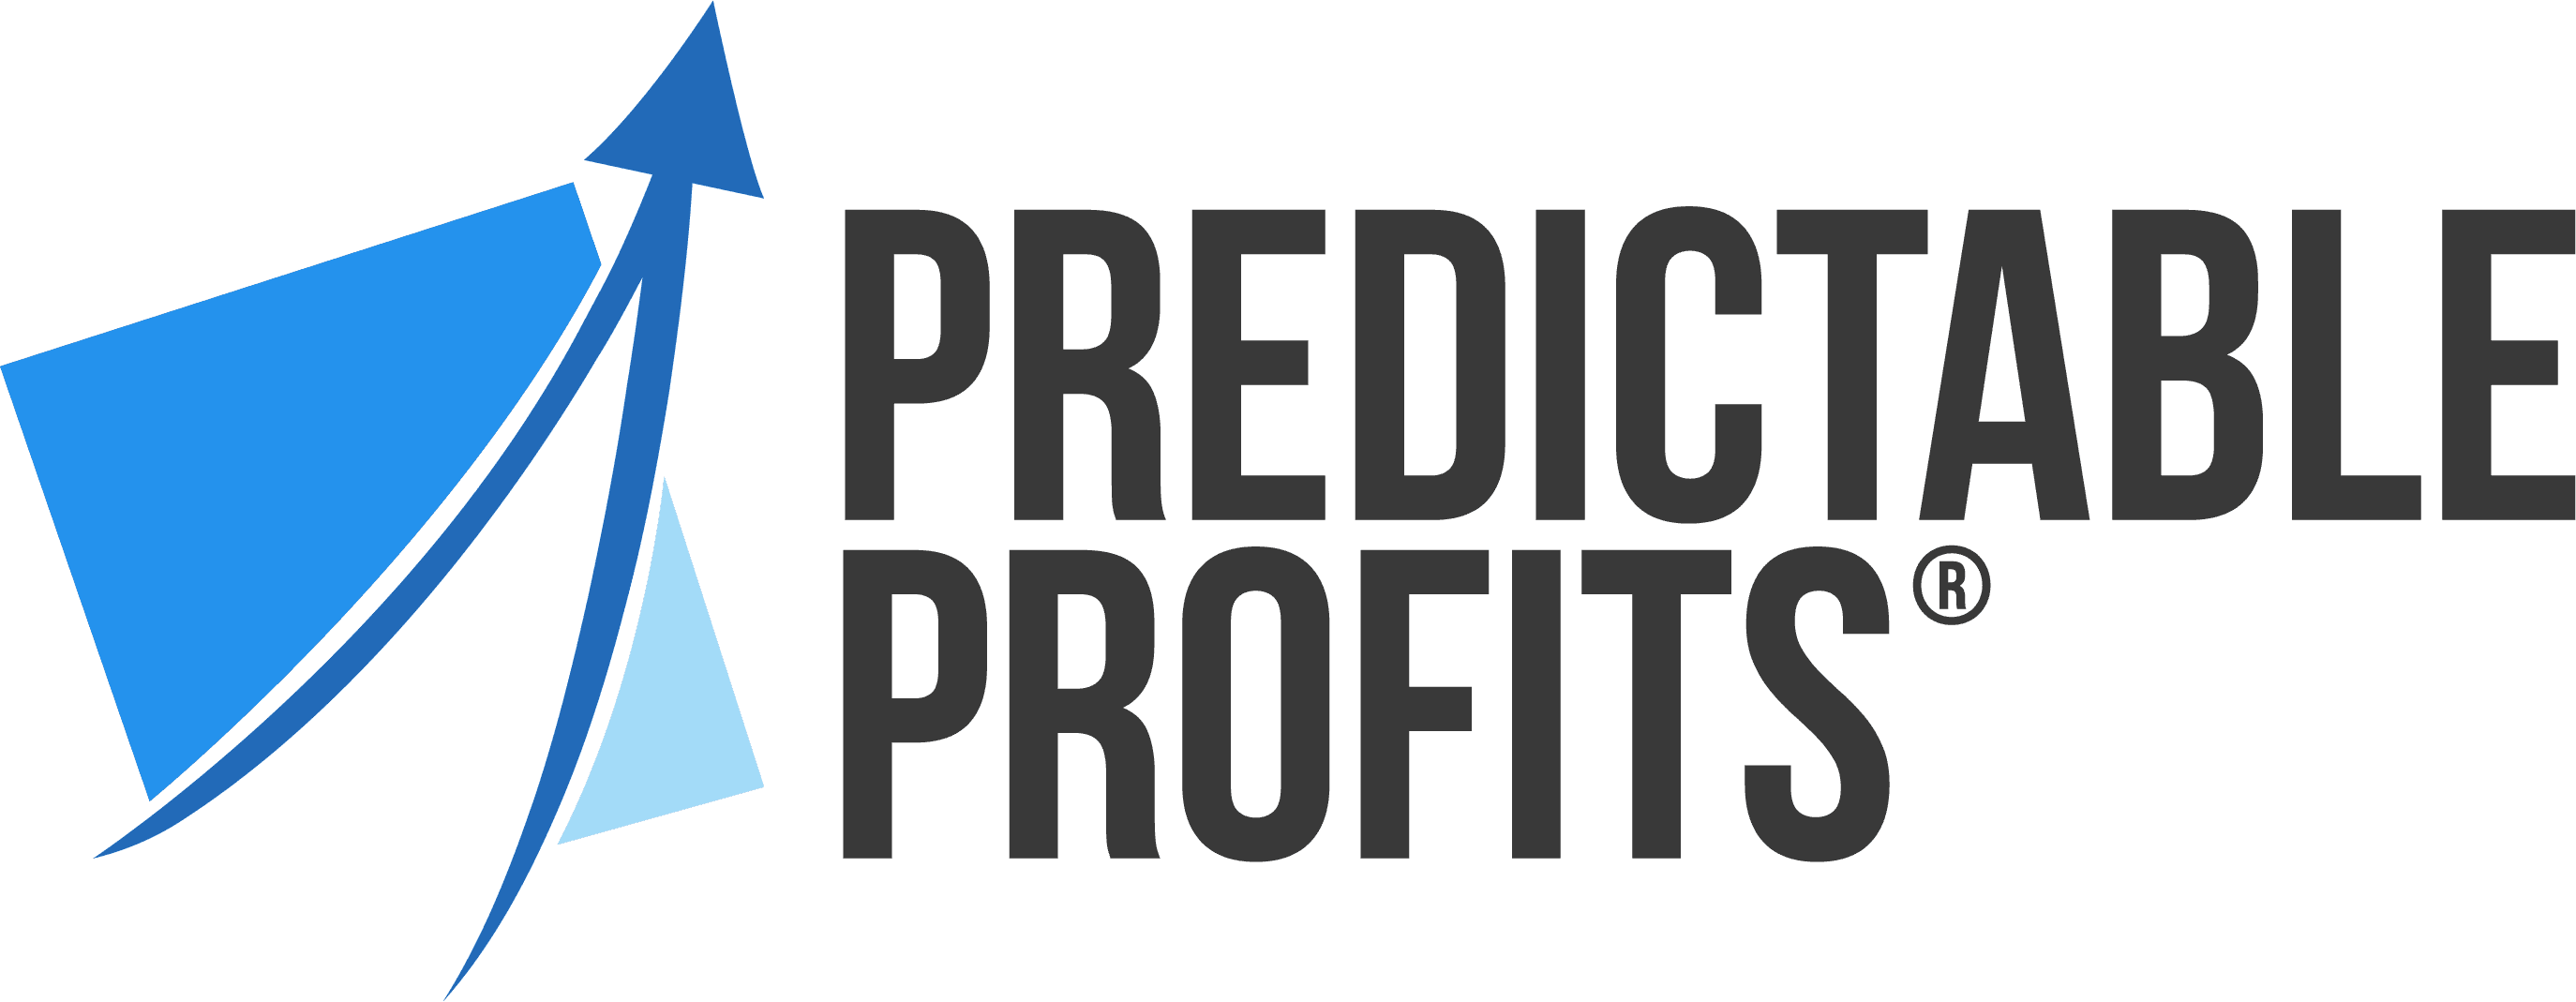 the Predictable Profits logo